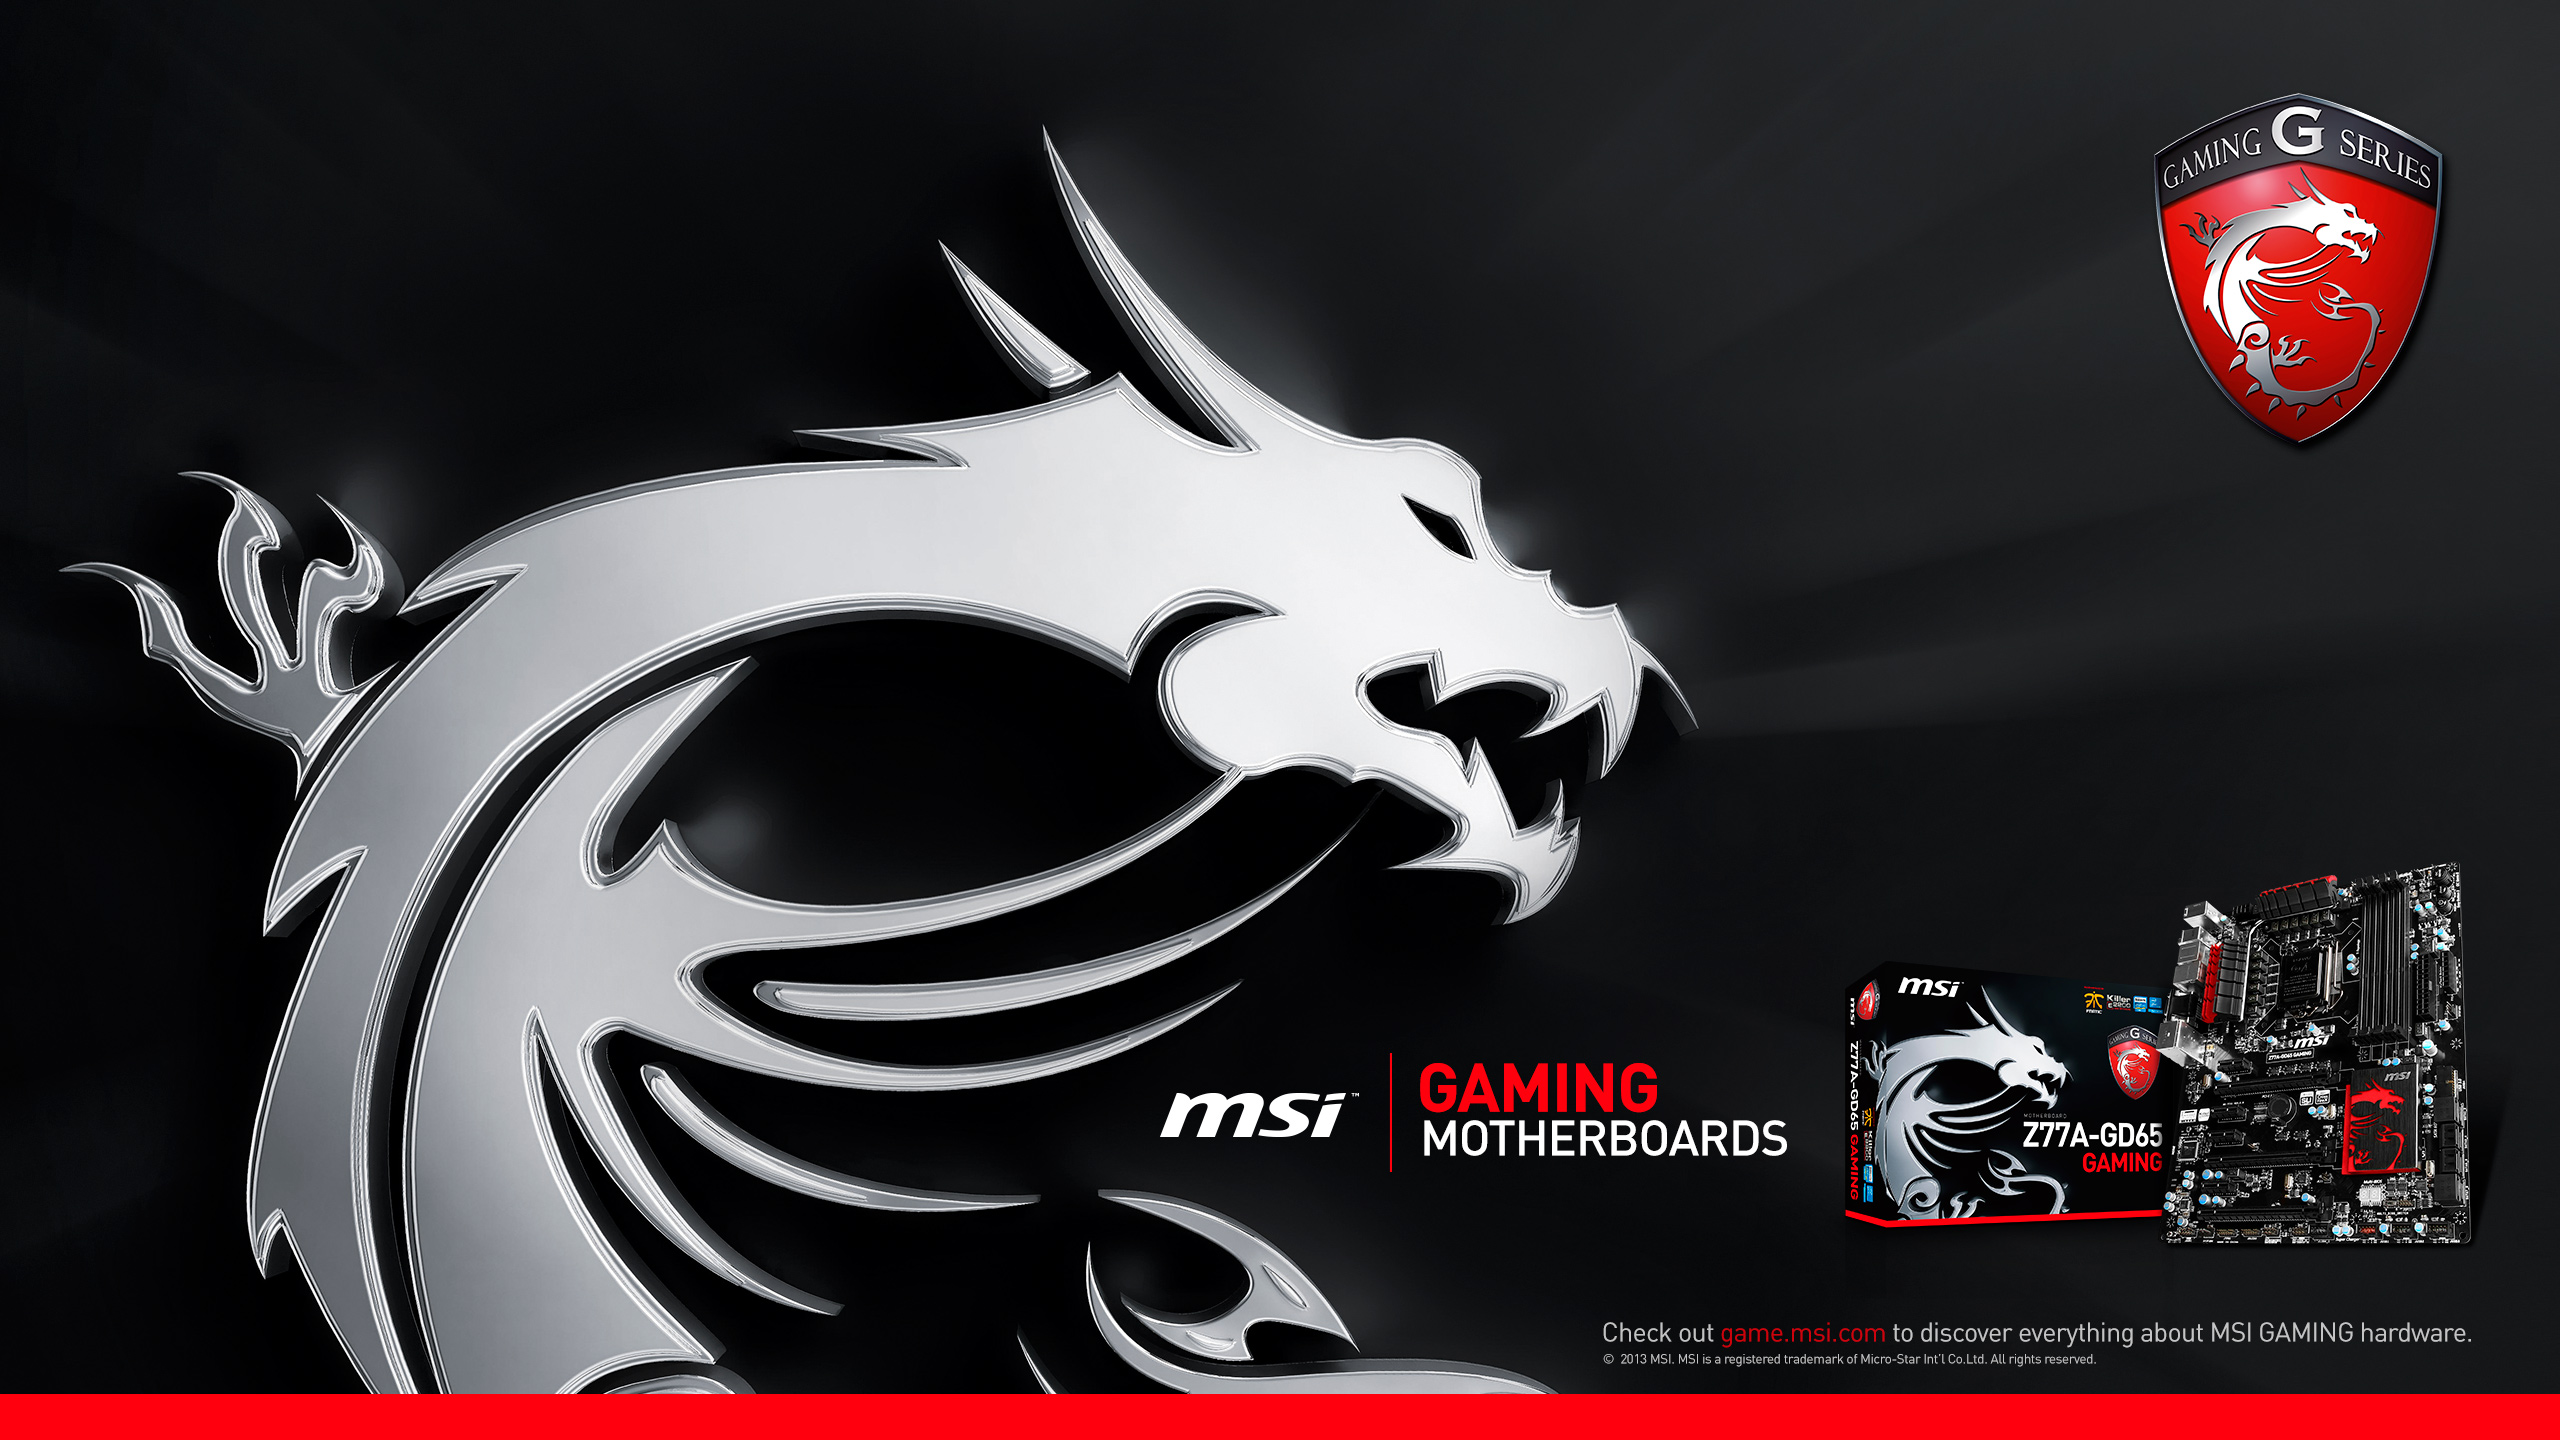 Msi 2560x1440 wallpaper wallpapersafari for Fond ecran gaming